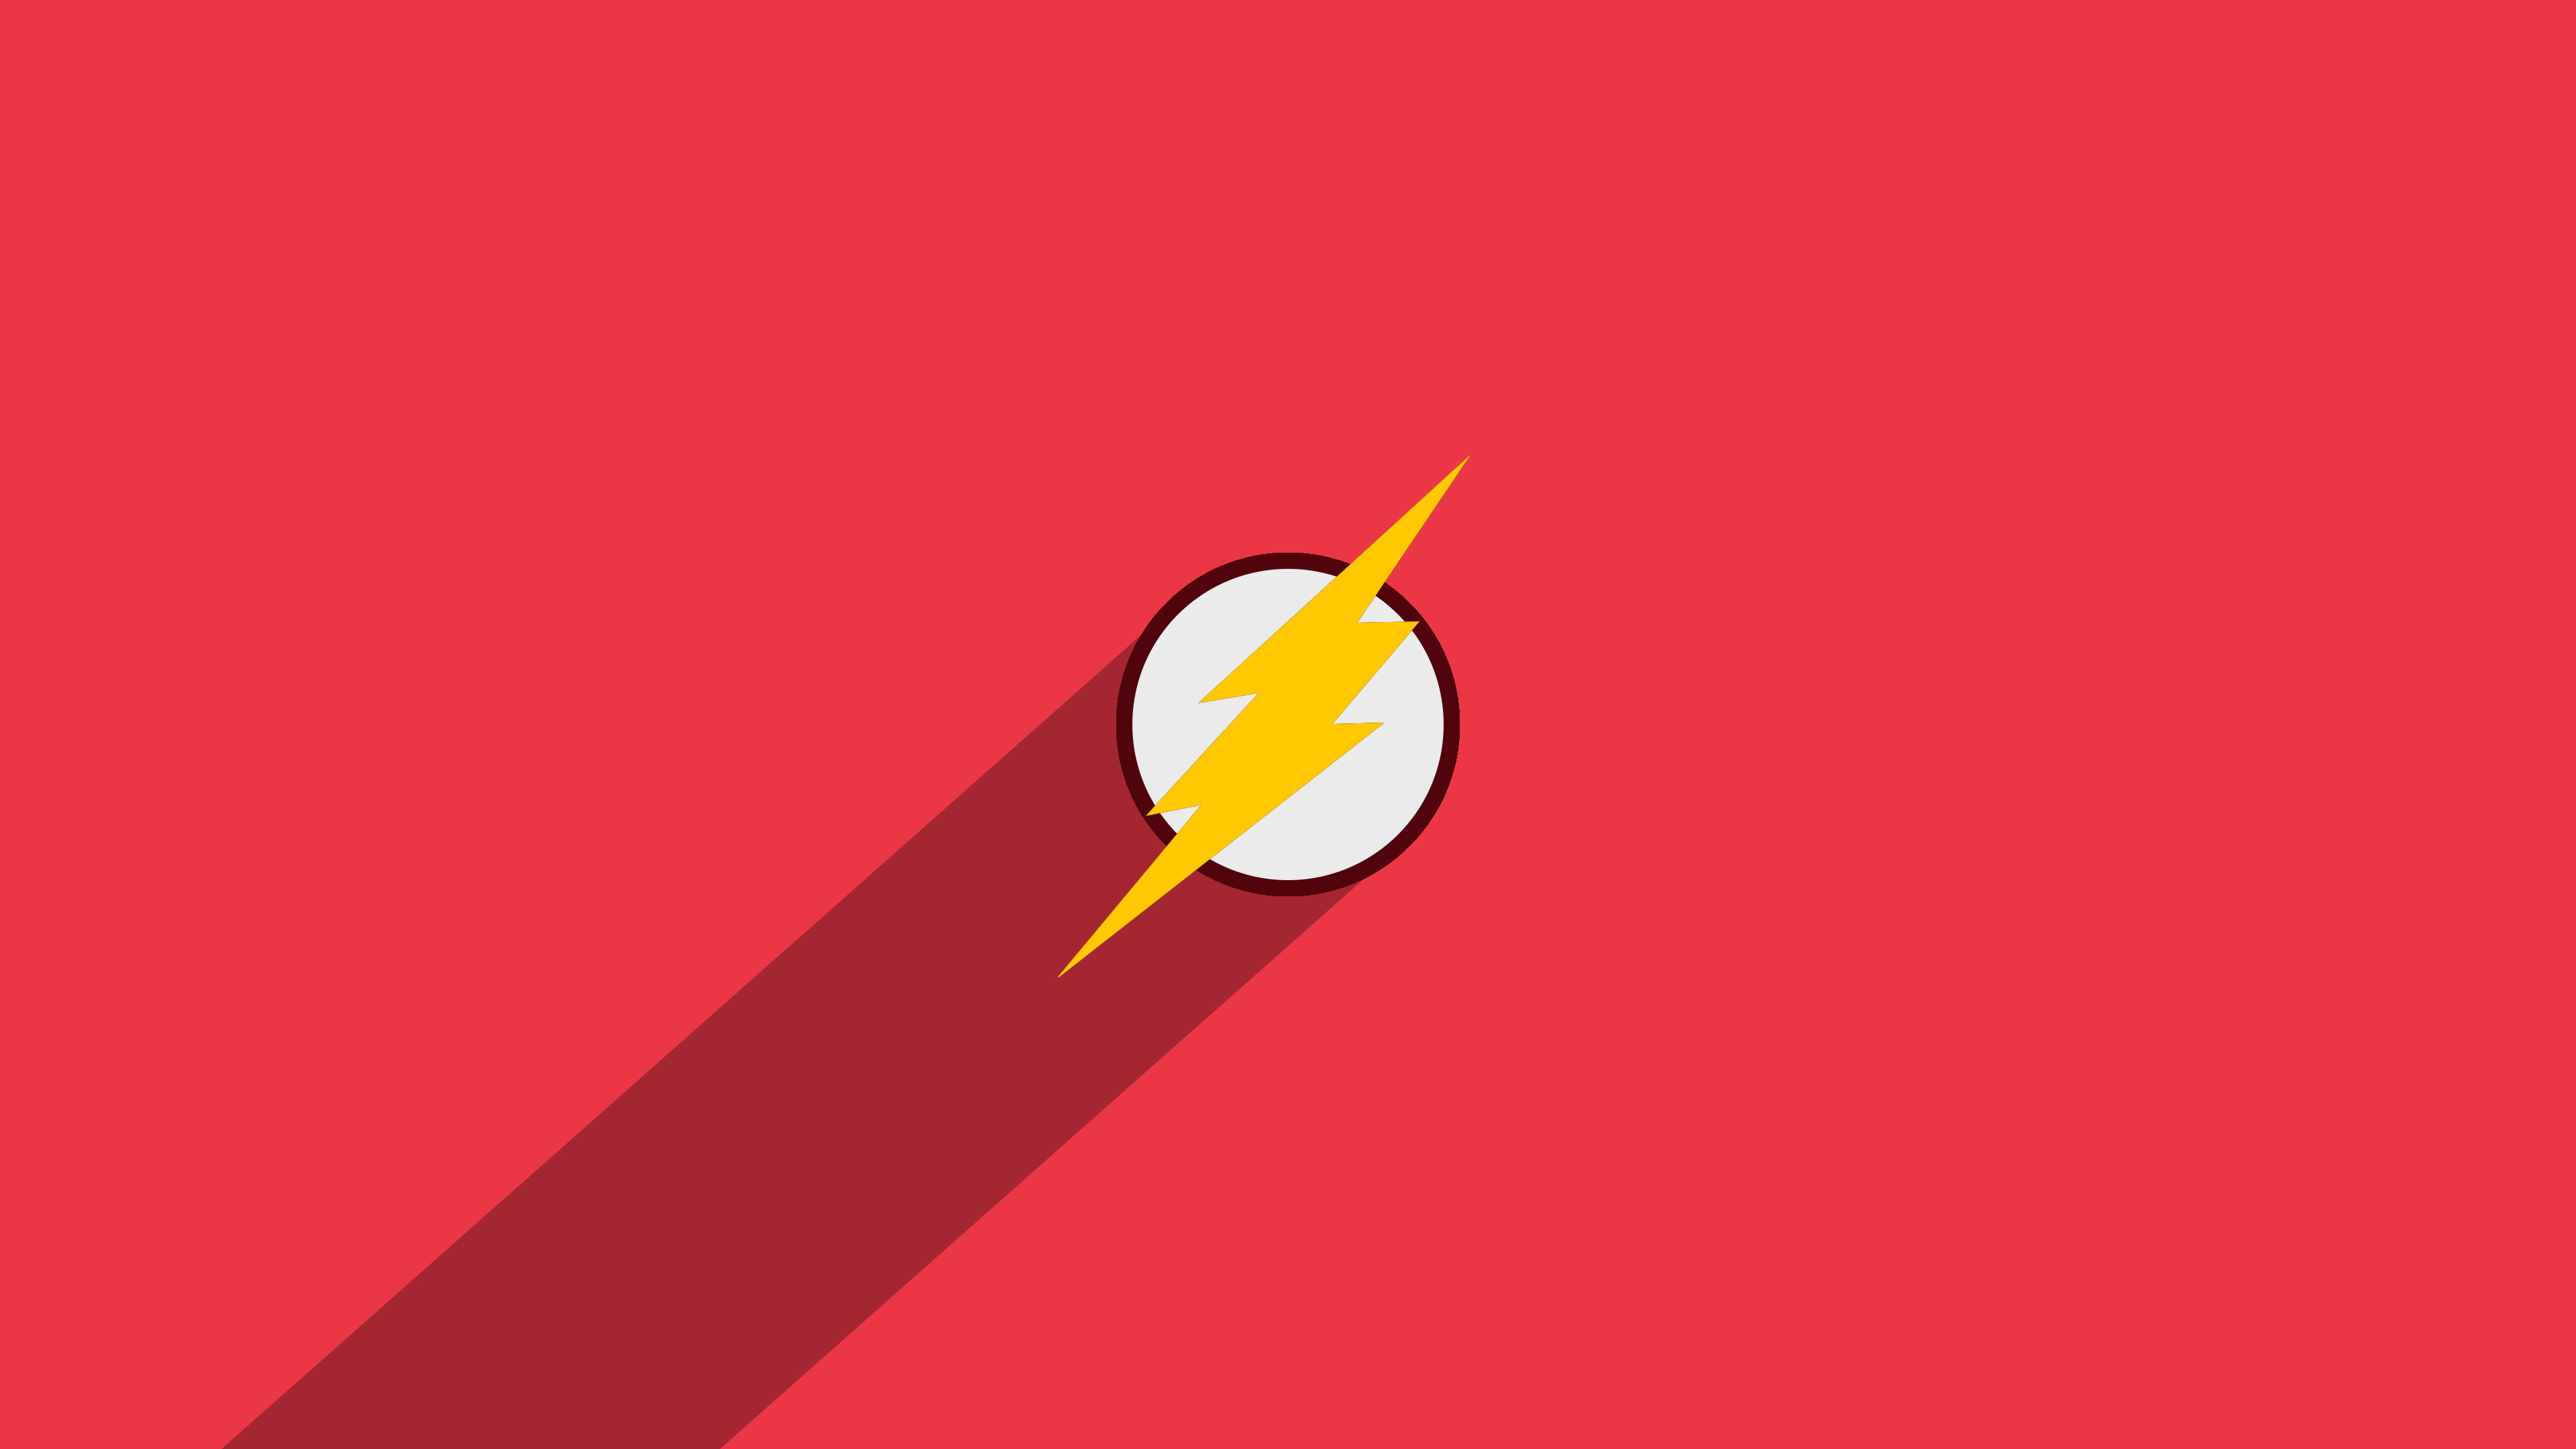 [WALLPAPER] Assorted Wallpapers In 4K Resolution (Mostly Material). The  Flash.jpg …